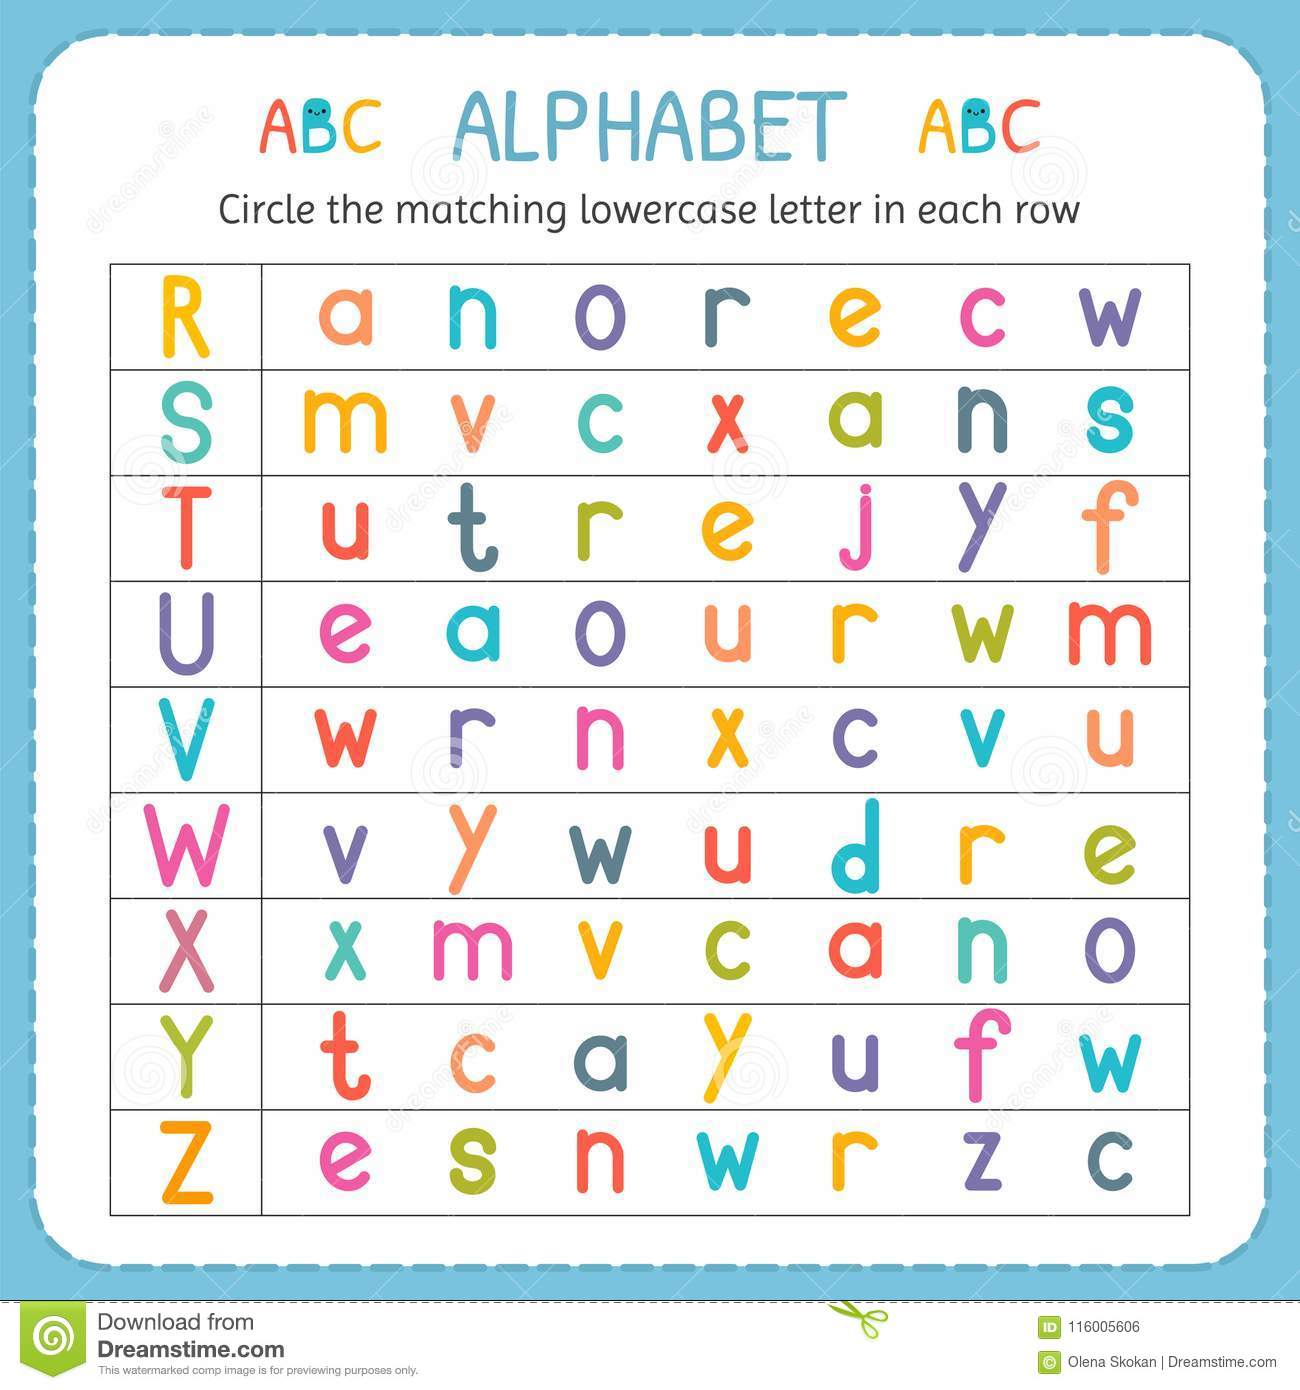 Circle The Matching Lowercase Letter In Each Row From R To Z Worksheet For Kindergarten And